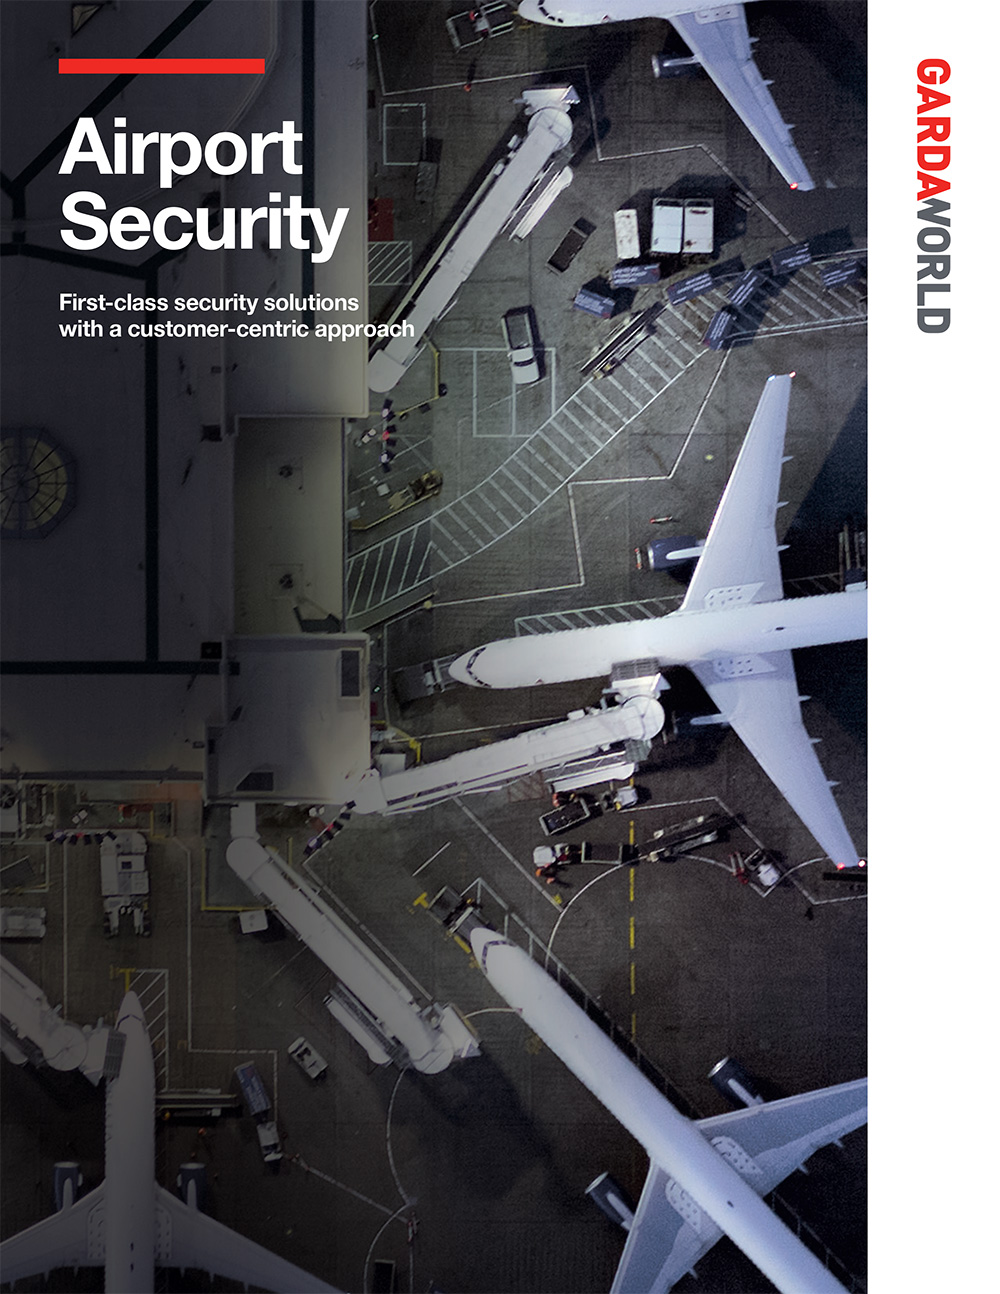 Capability Sheet - Aviation Security